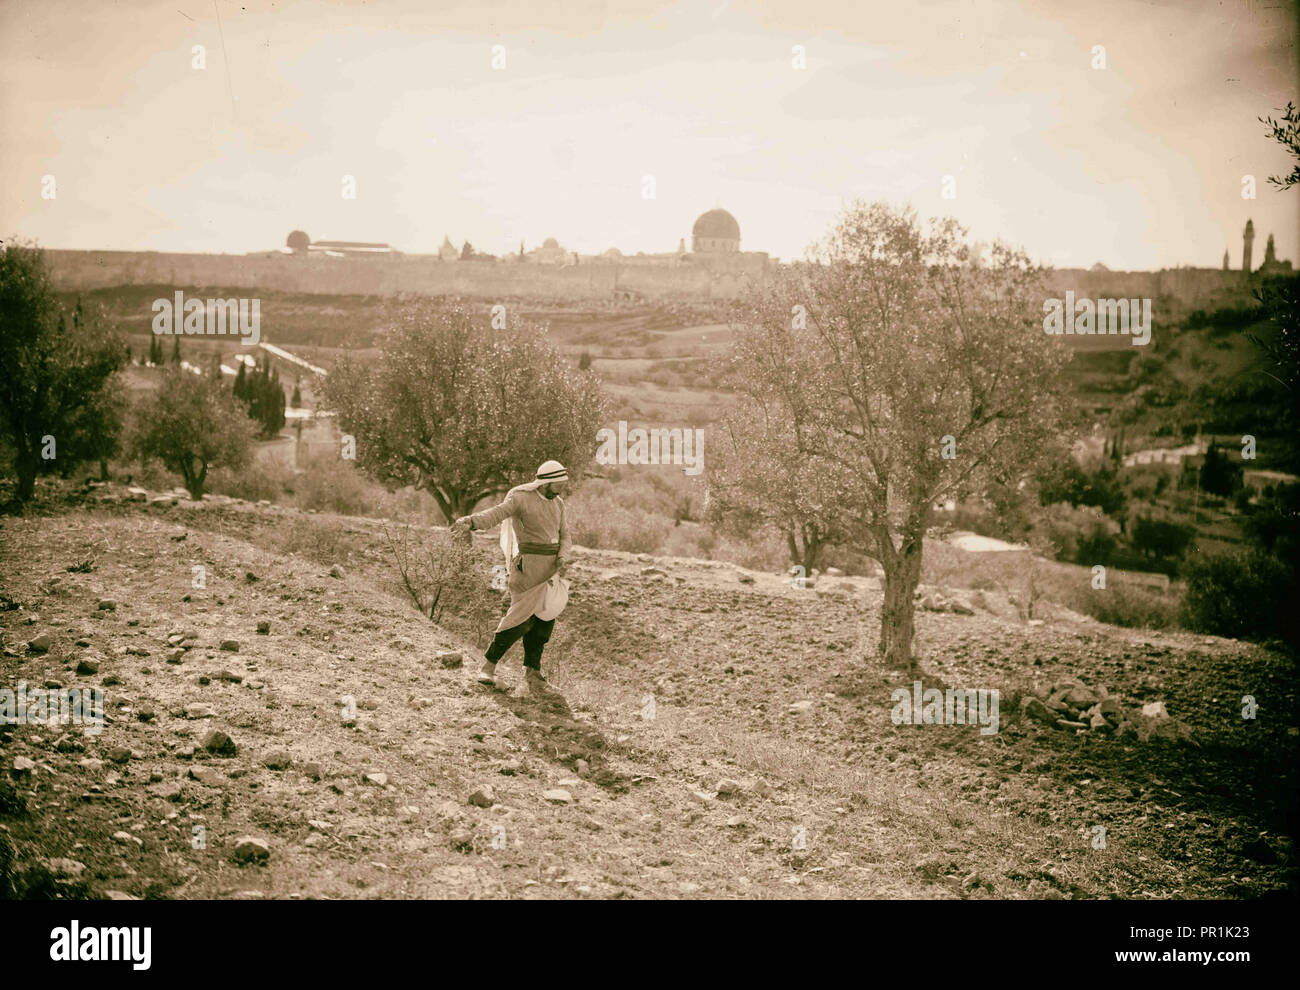 Agriculture, Sowing grain. 'Behold, a sower went forth to sow' 1920, Middle East - Stock Image